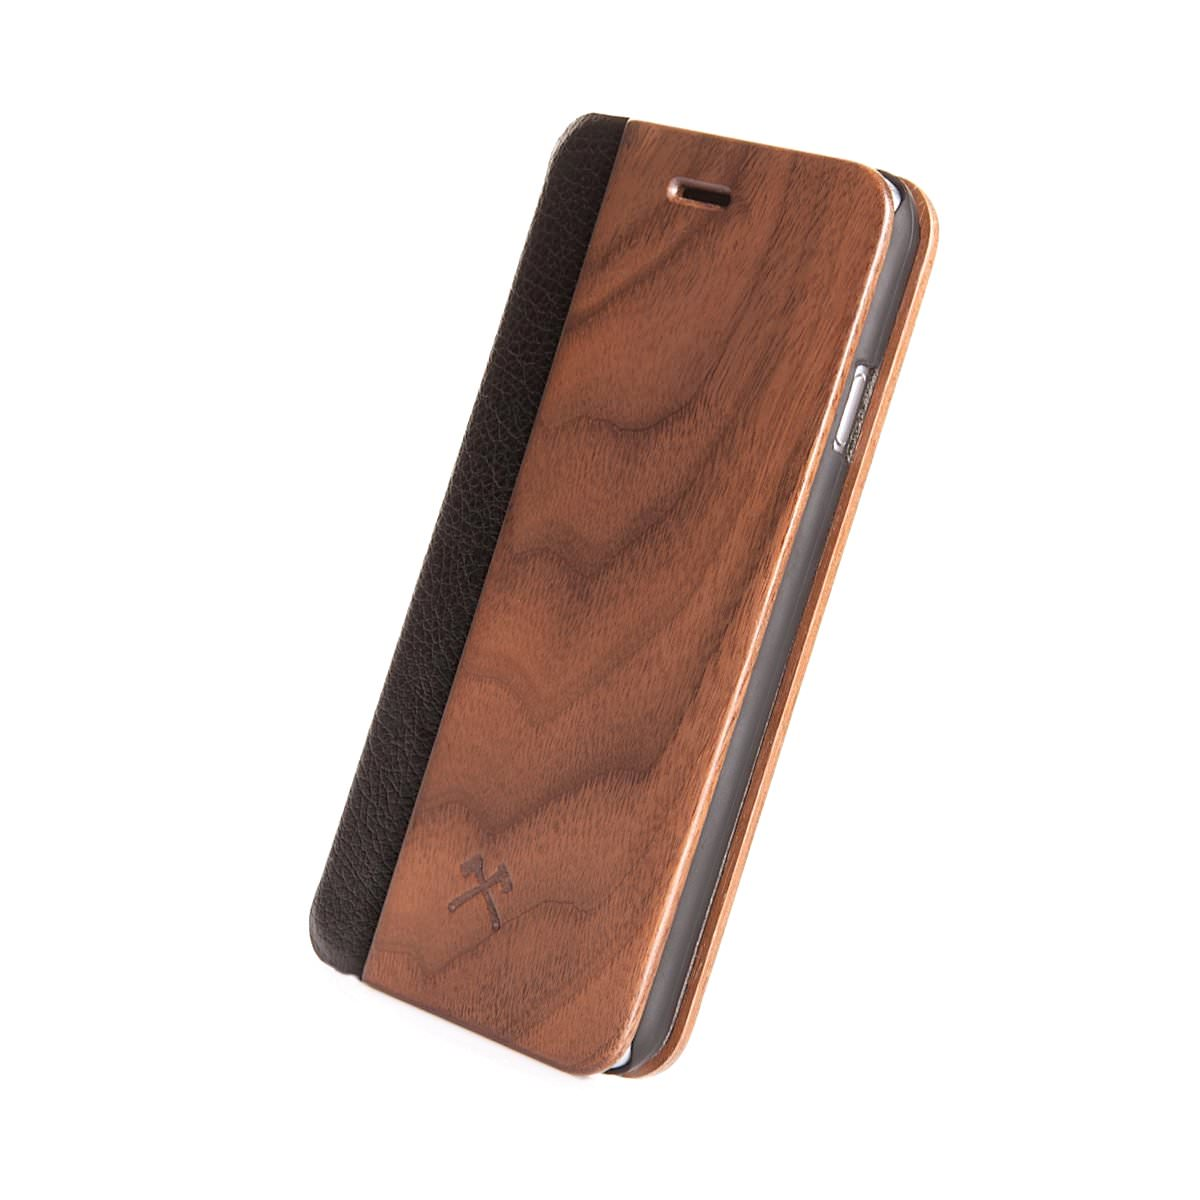 8 iphone flip case